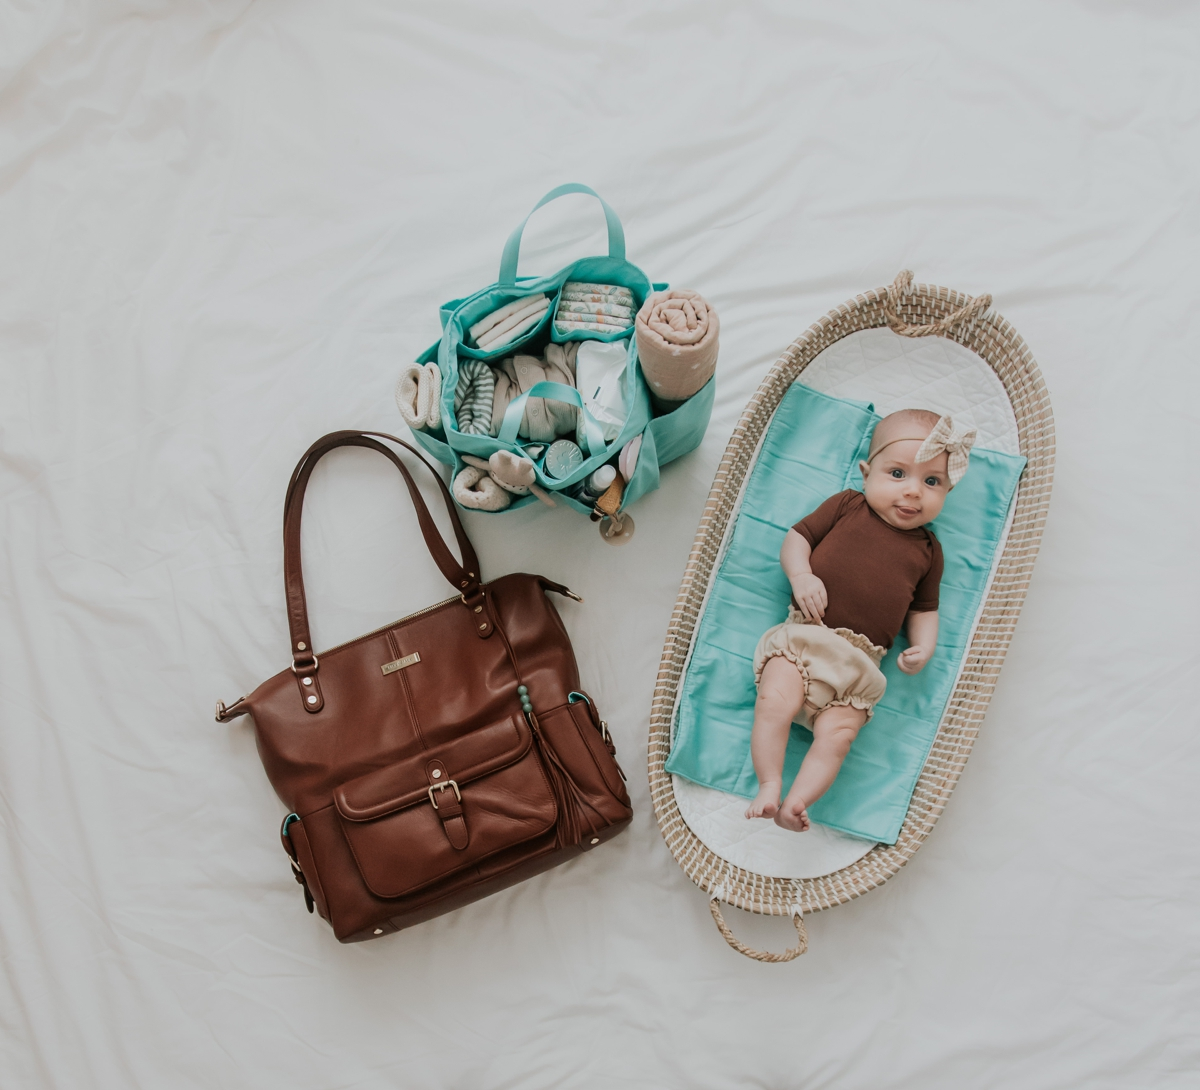 Kandis_Marino_Photography_Lifestyle_Lily_Jade_Diaper_Bag_Influencer_Abassador_Boho_Room_Home_Design_Decor_Modern_Mid_Century_Baby_Mom_Blogger_Mommy_Blog_Newborn_Pregnancy_0116.jpg